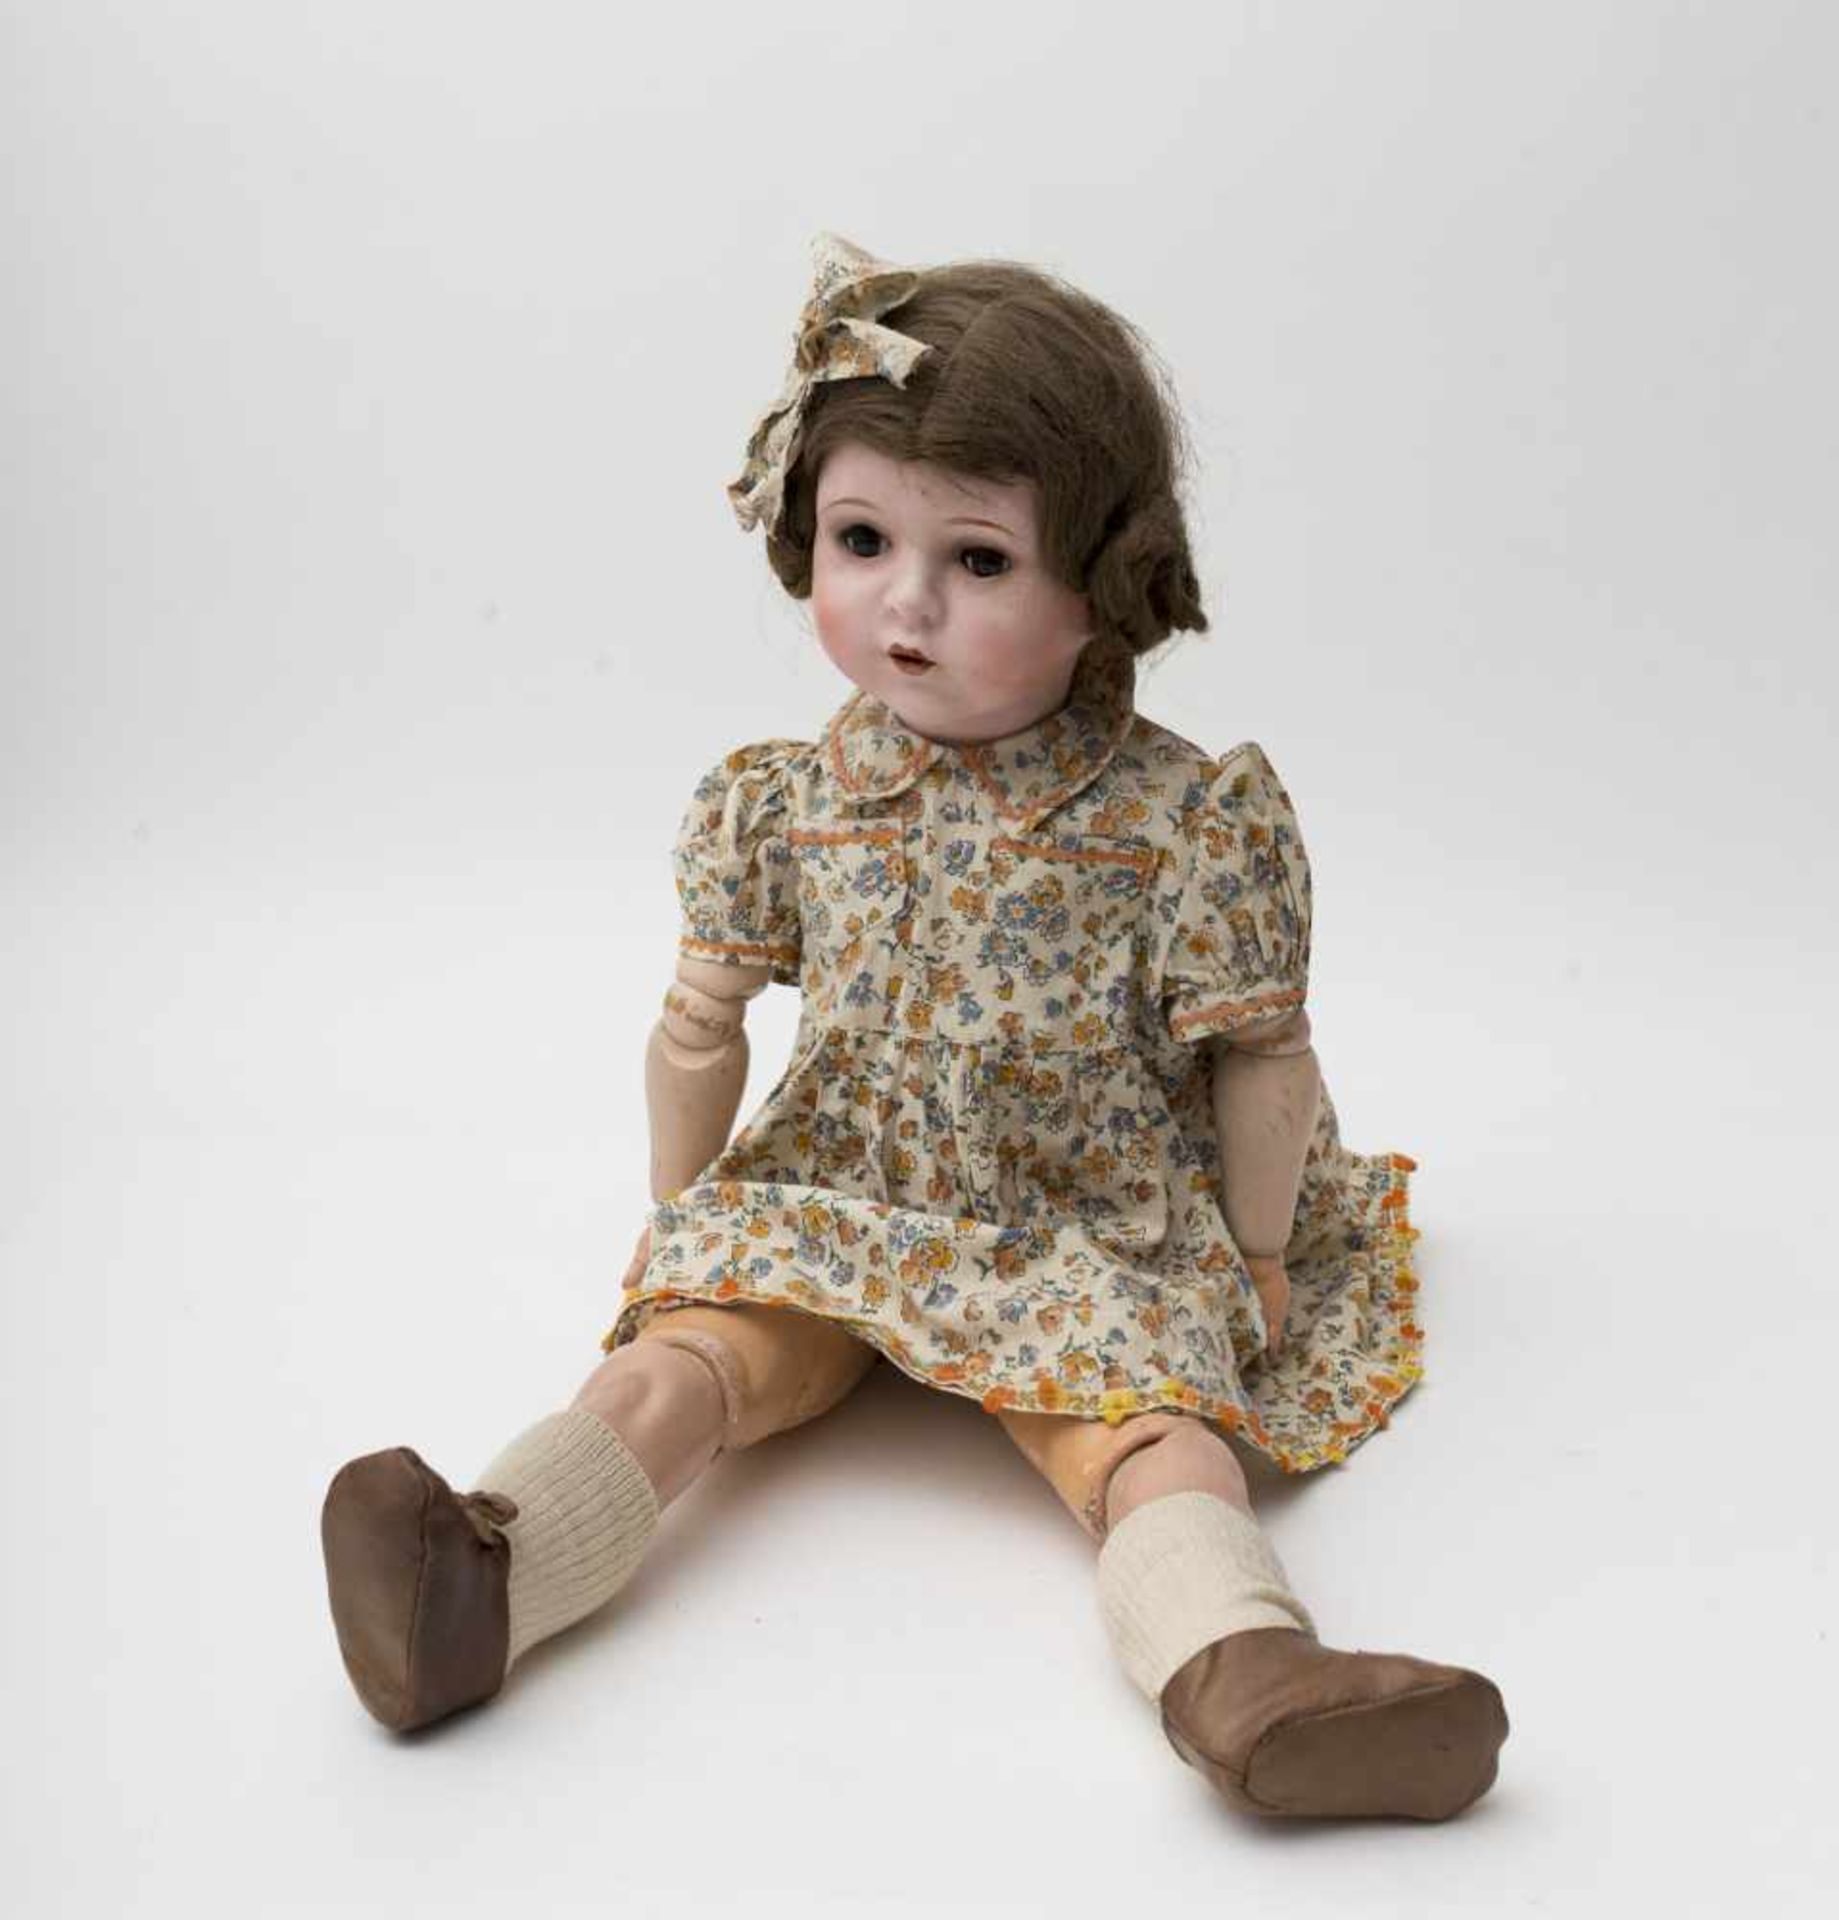 Large Belgian UNICA doll Composition head, open mouth, fixed brown eyes, Toddler-type articulated